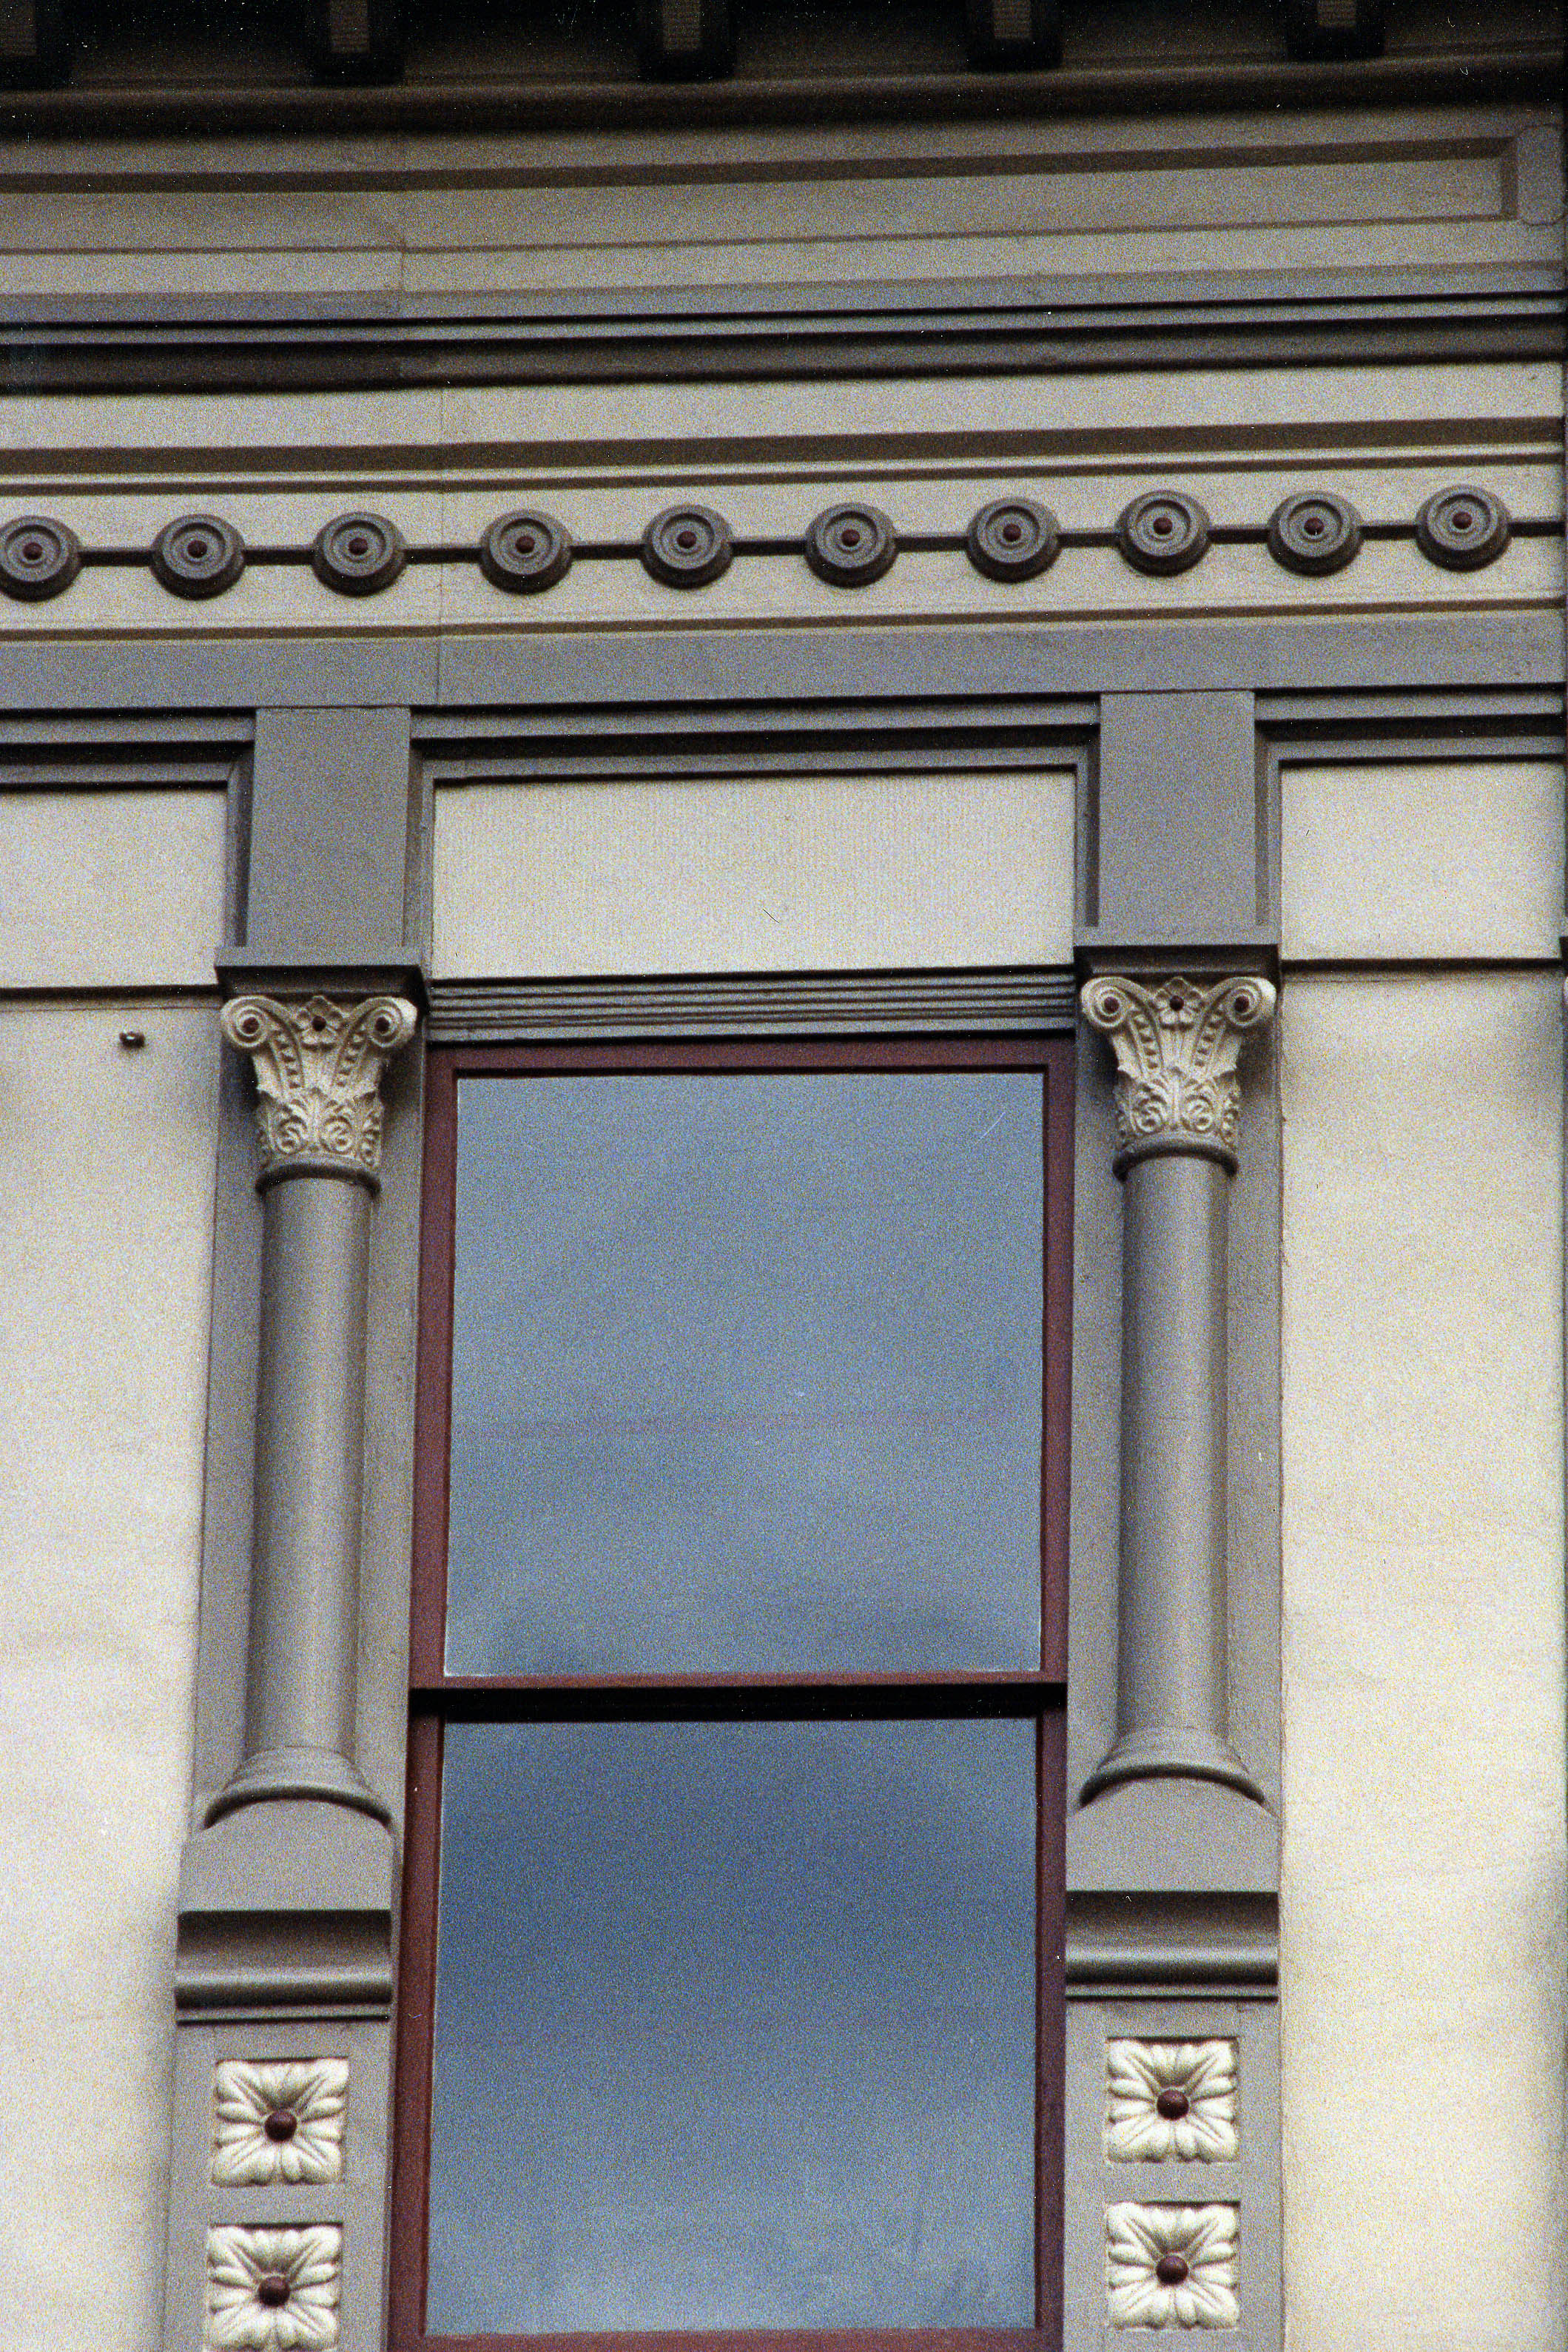 Restored Exterior Window Details